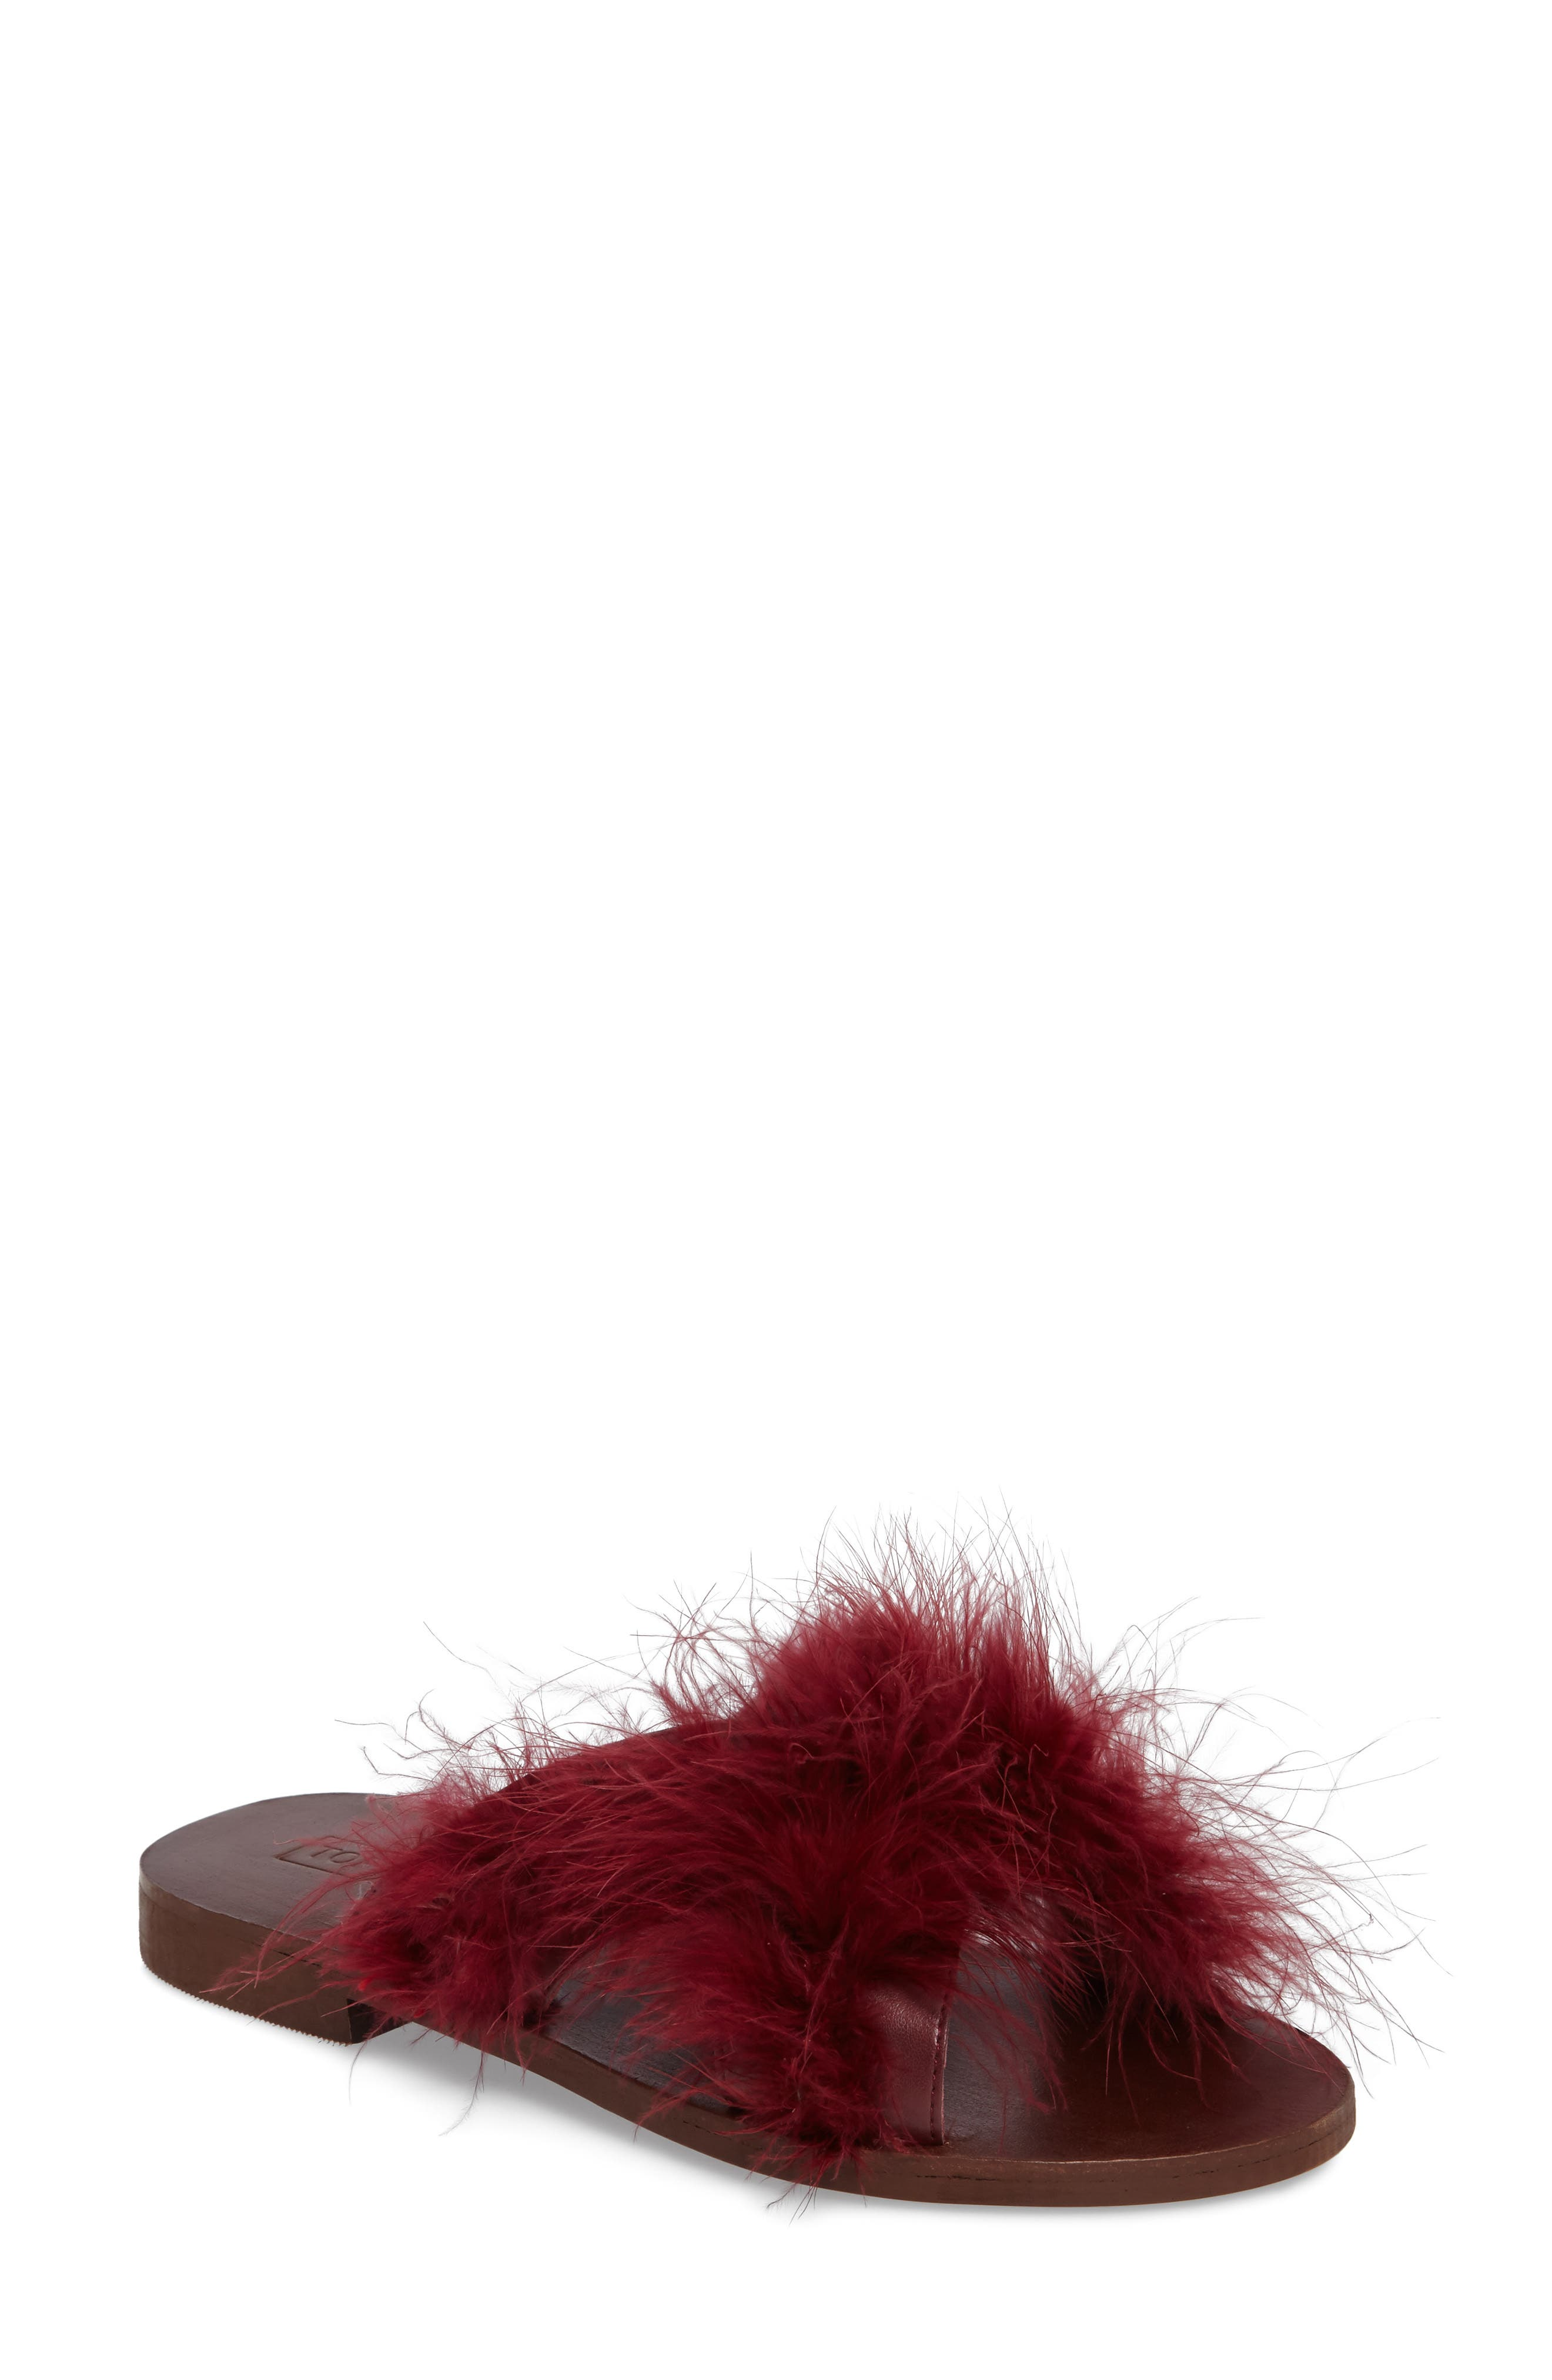 Alternate Image 1 Selected - Topshop Fenella Feathered Sandal (Women)